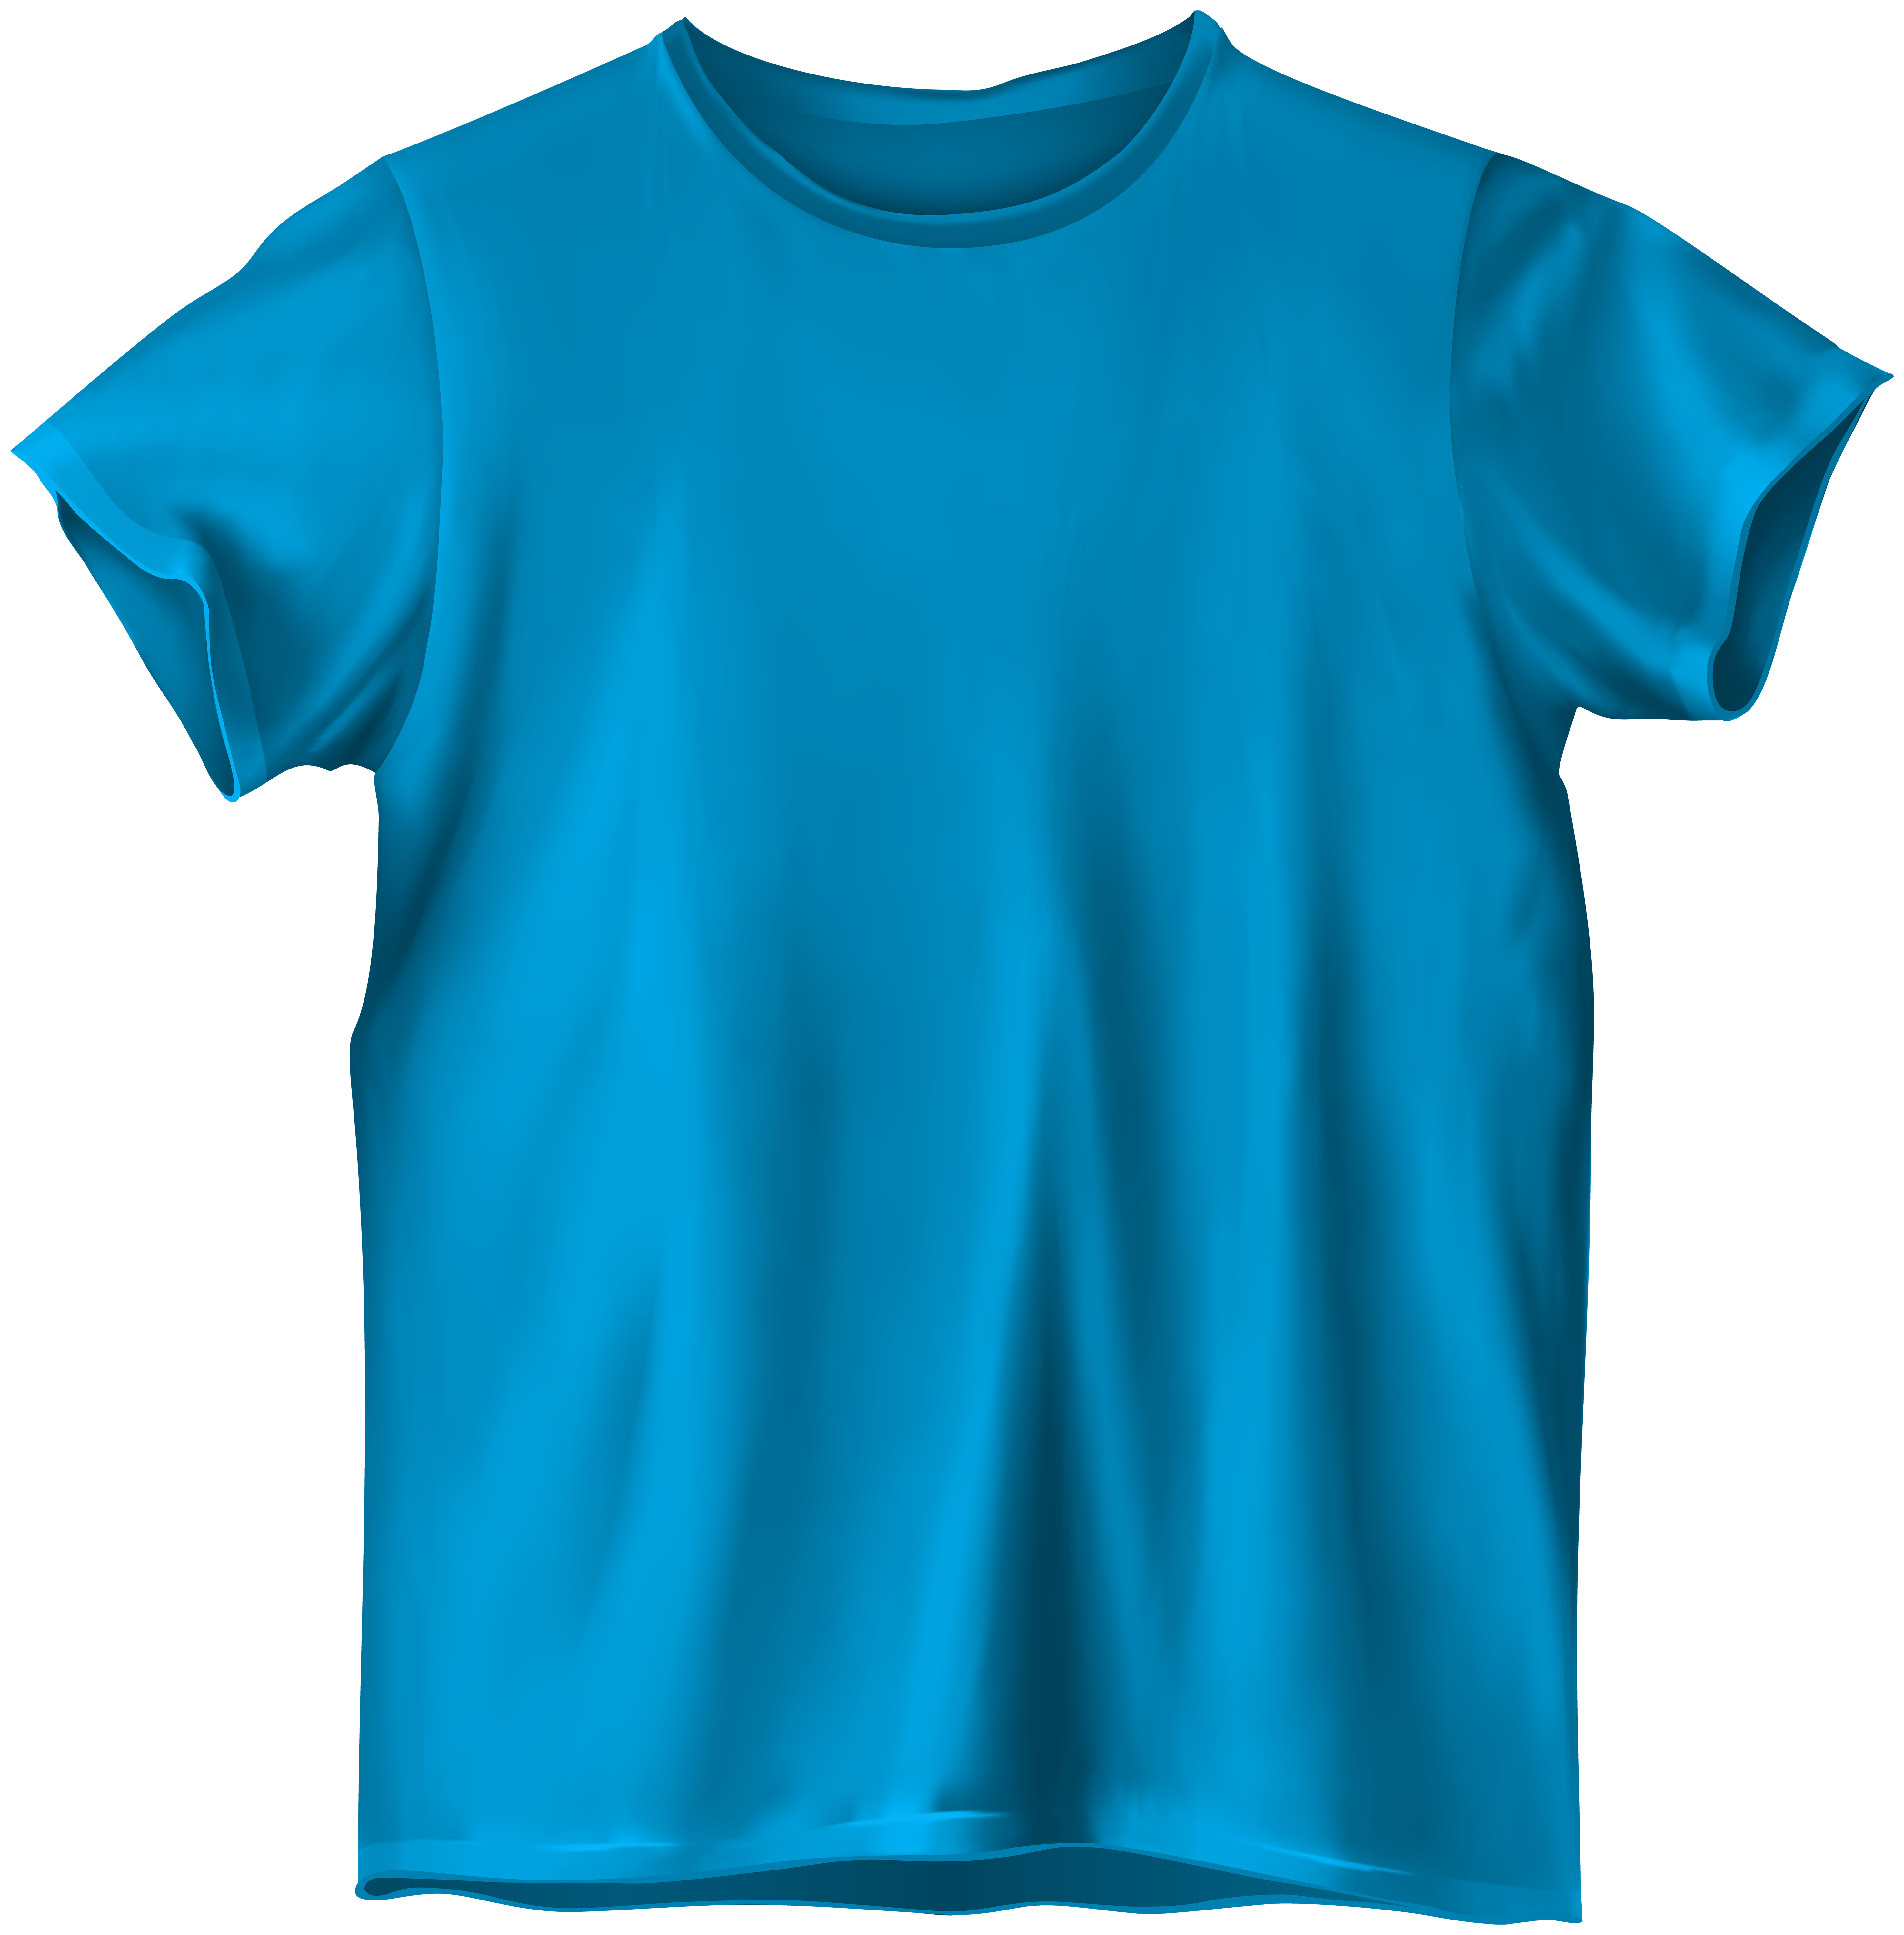 vector transparent library Gold clipart tshirt. Blue t shirt png